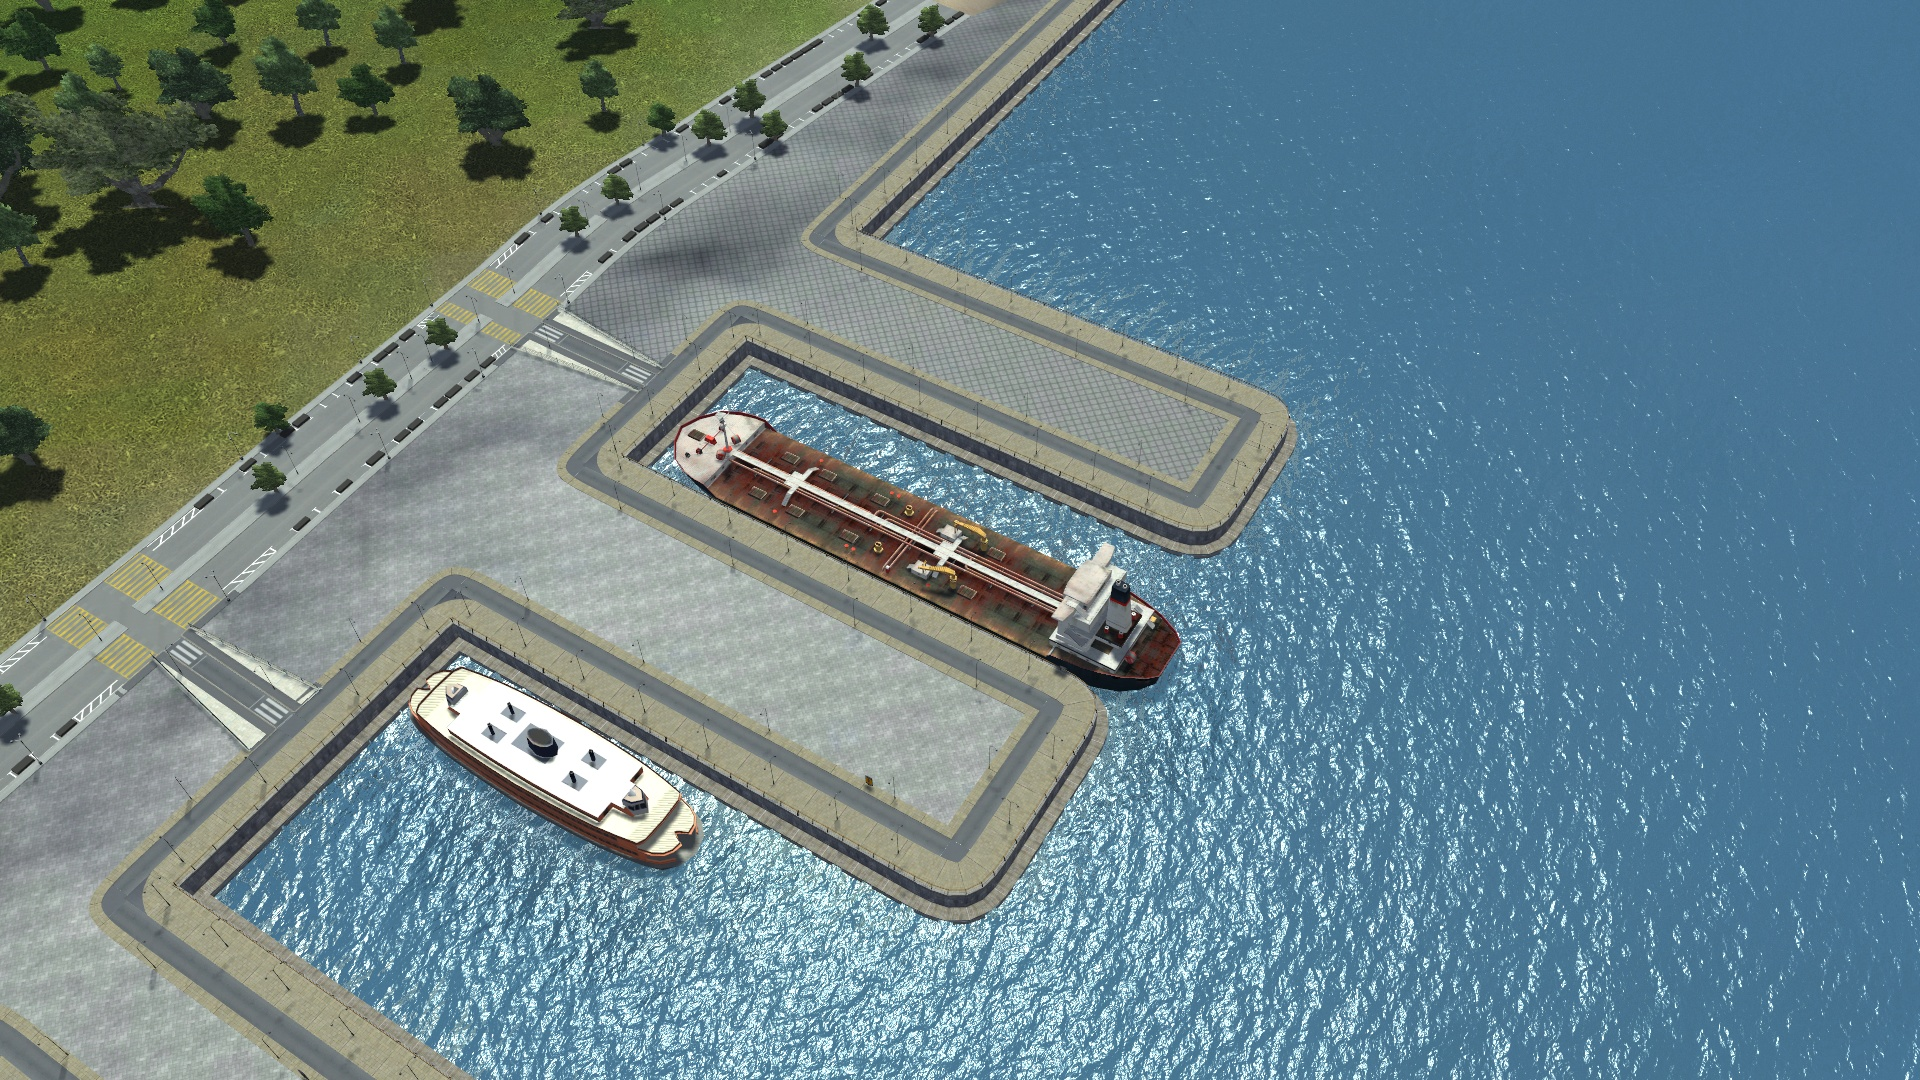 cxl_screenshot_harbour town_2.jpg